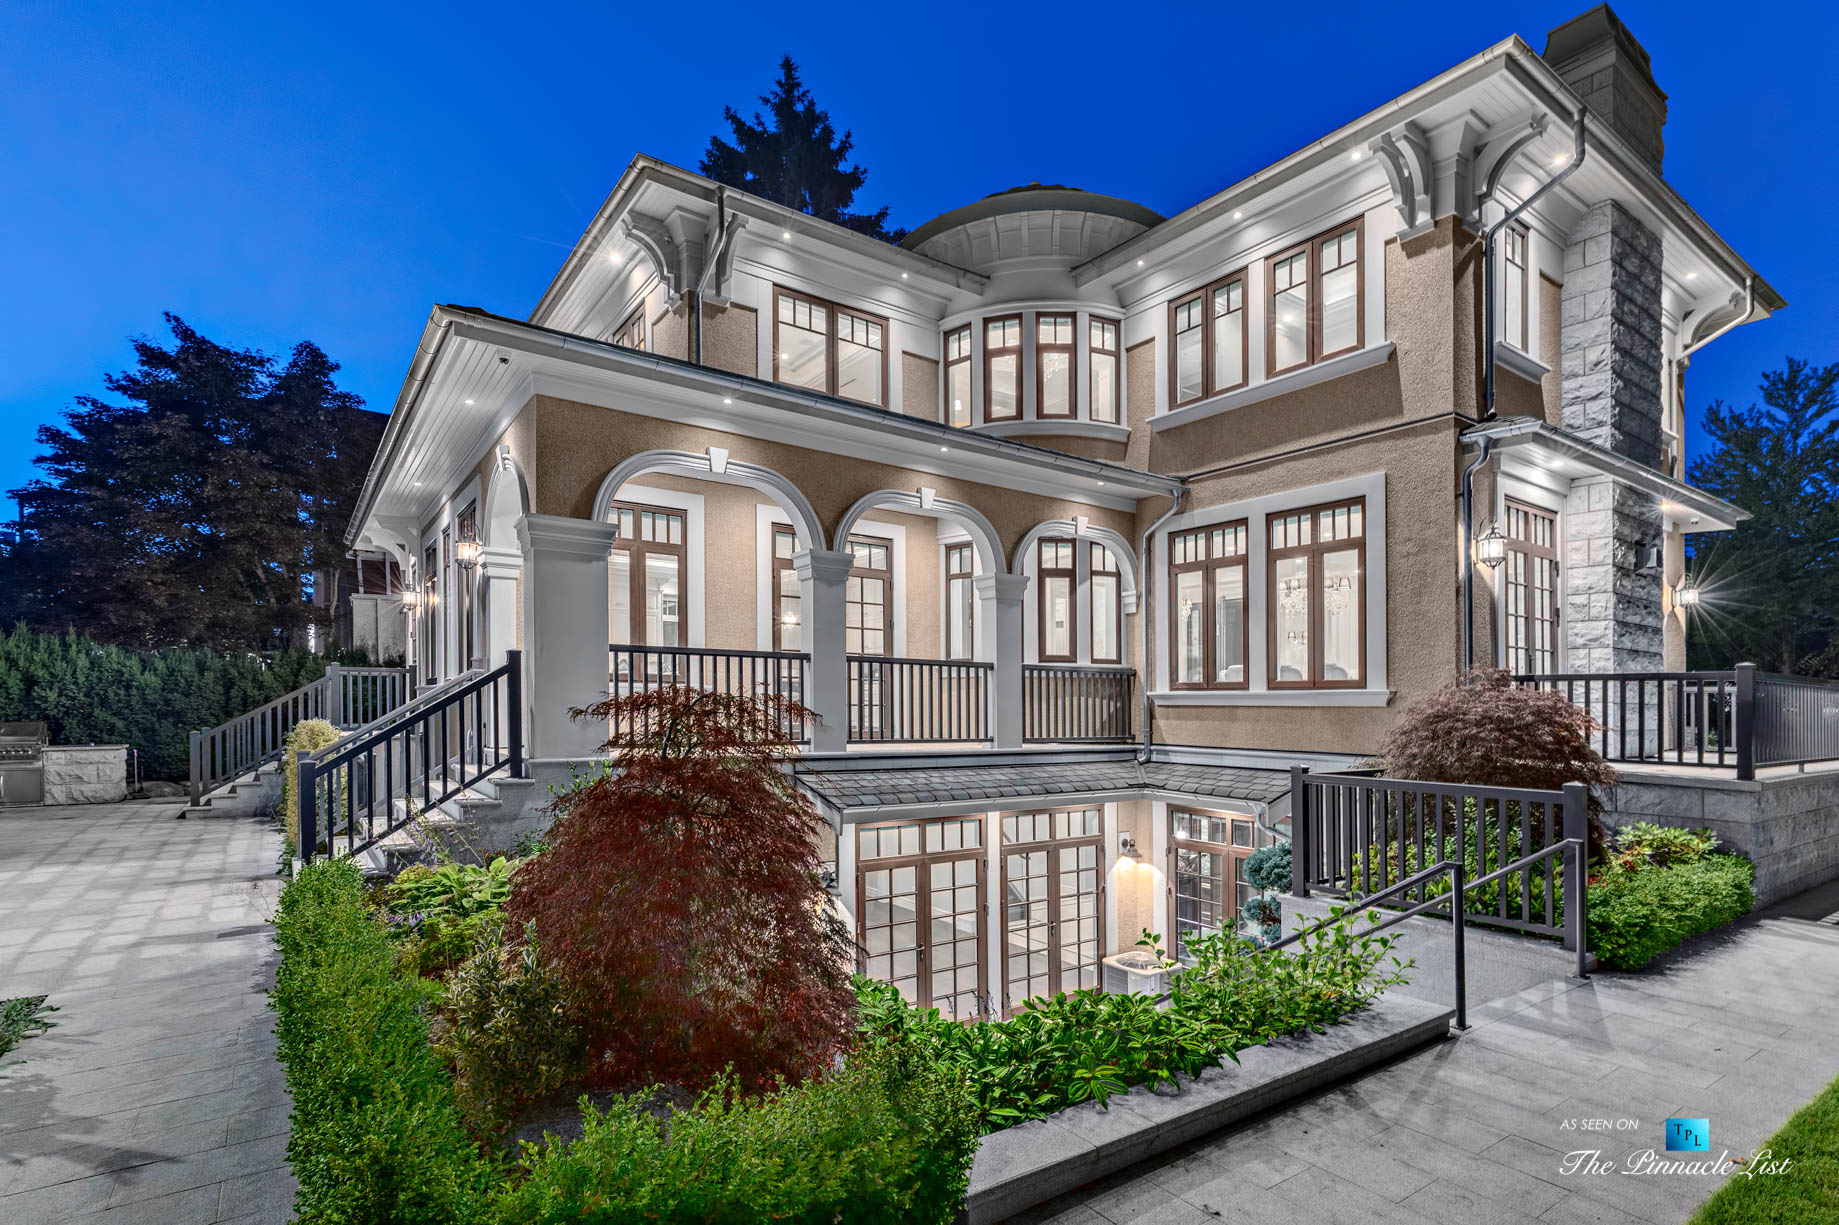 Luxury Real Estate - 5887 Adera St, Vancouver, BC, Canada